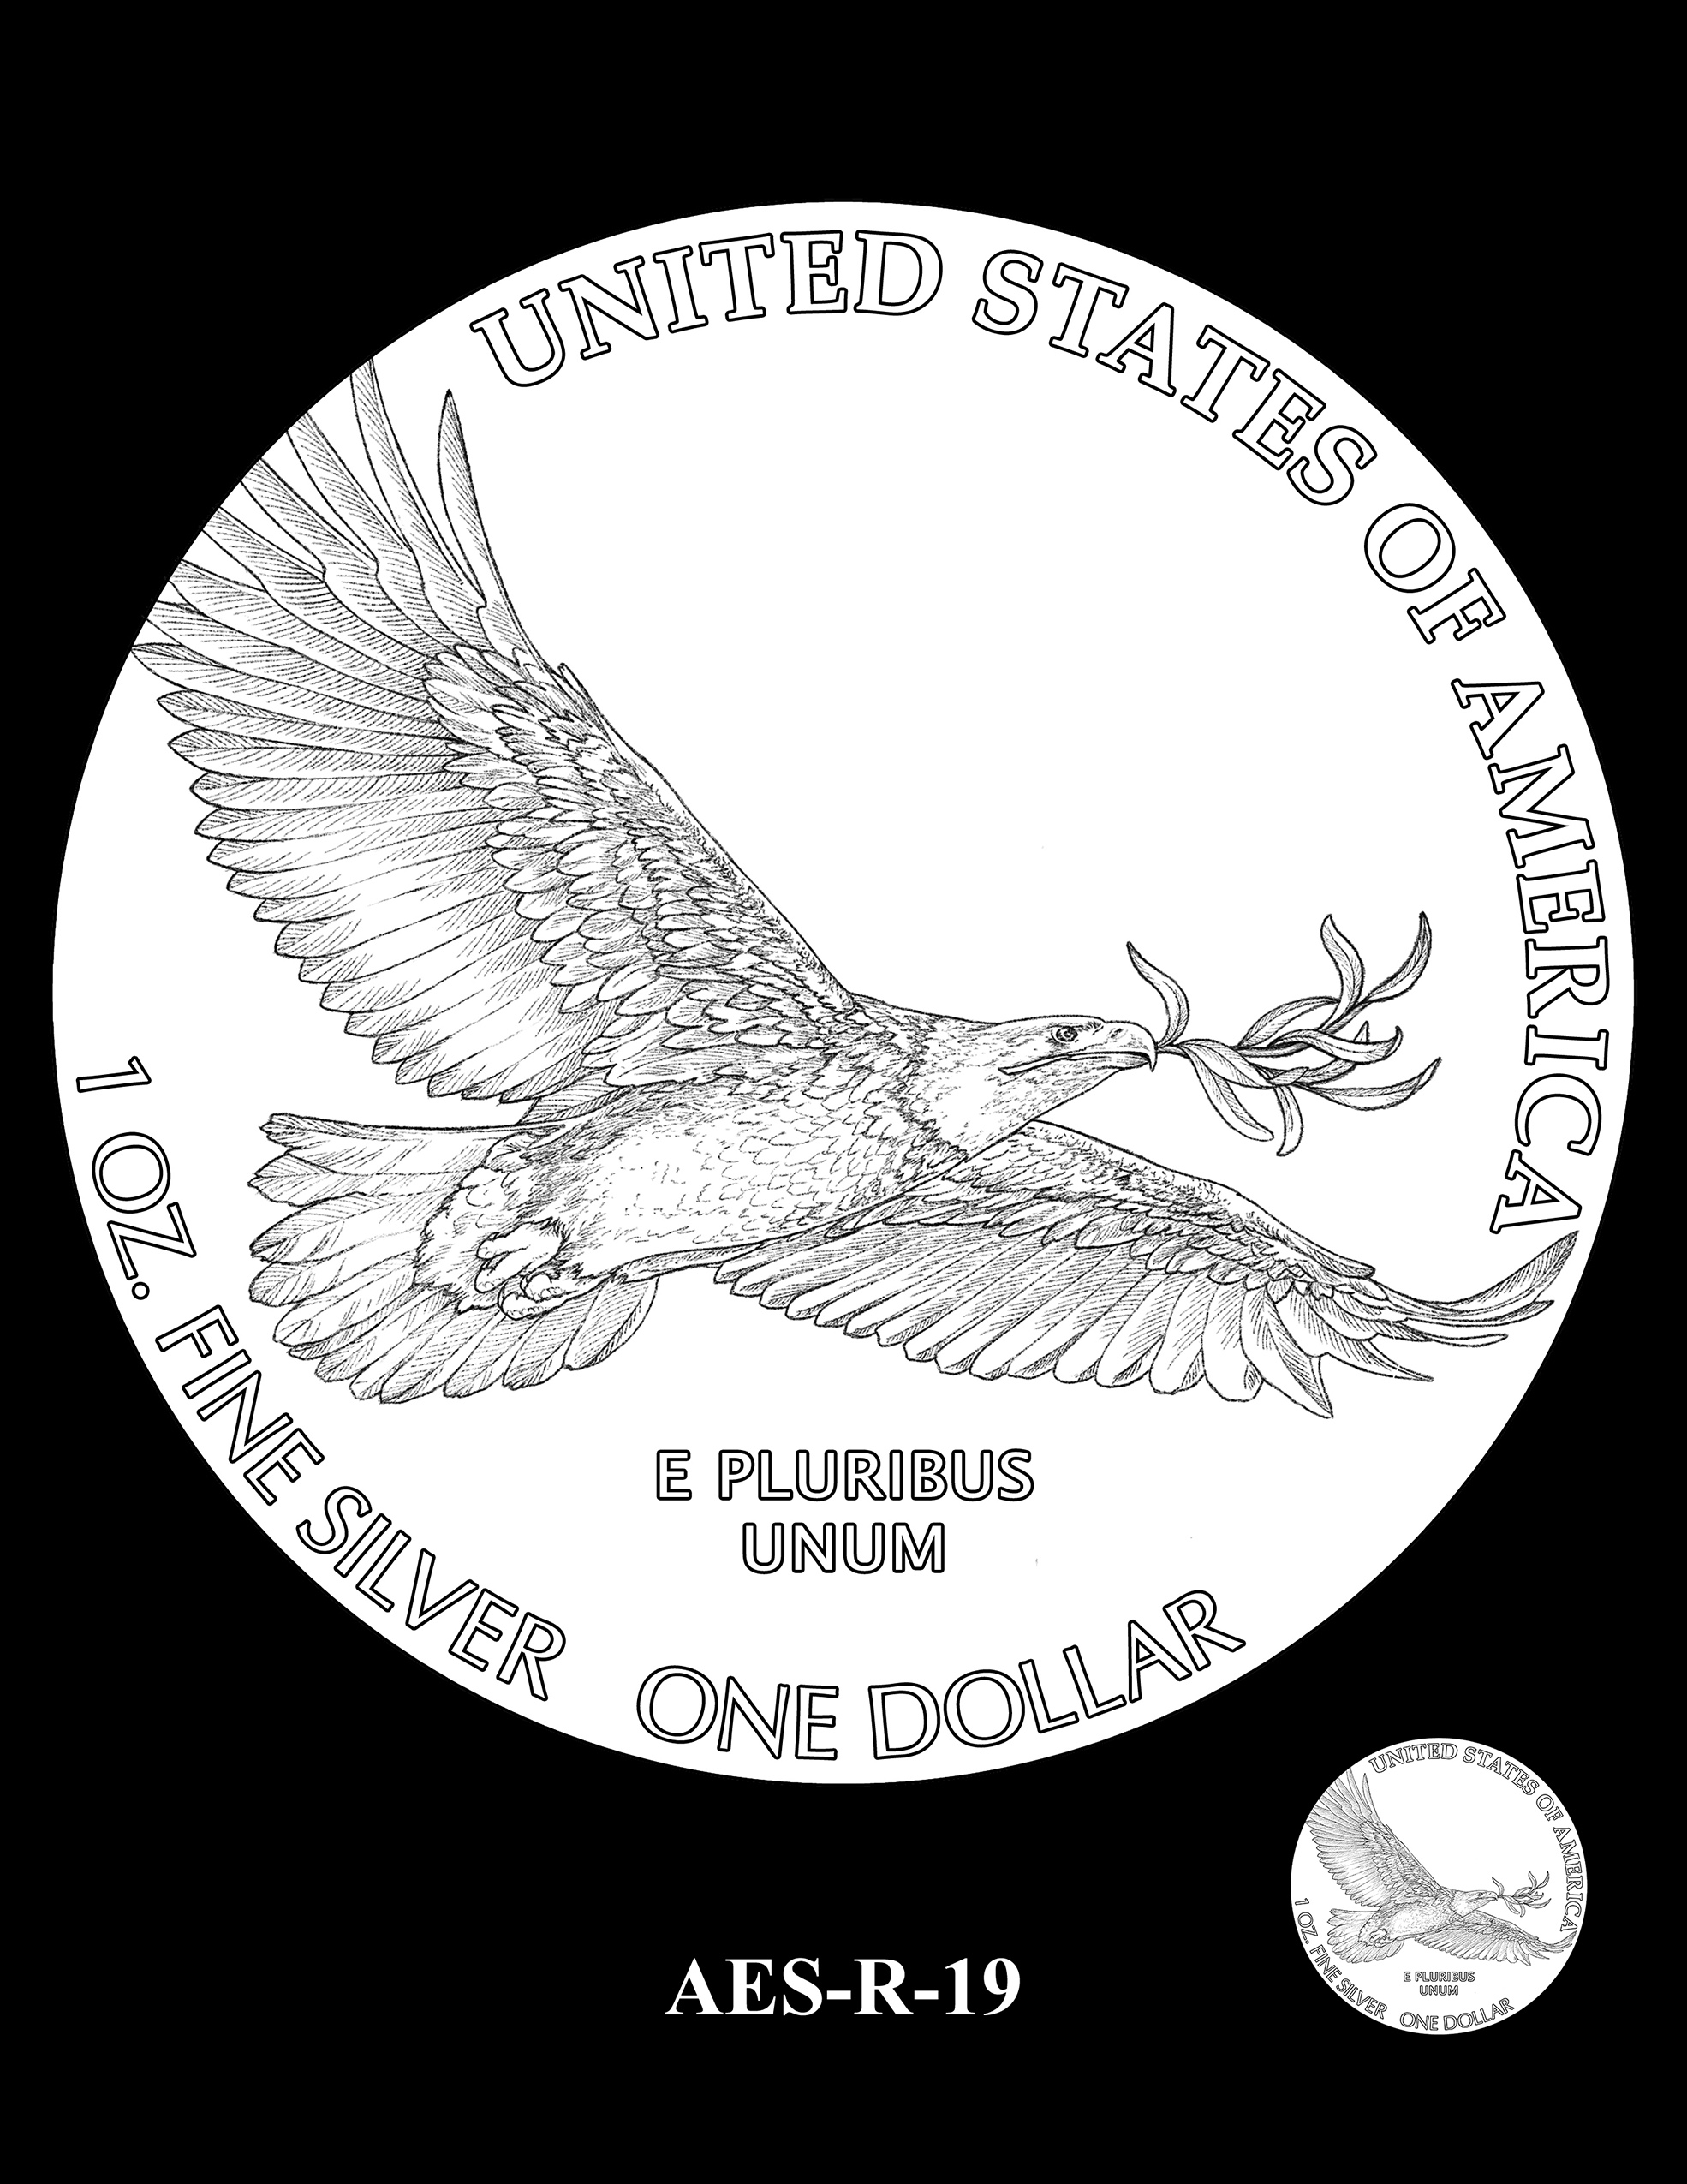 AES-R-19 -- American Eagle Proof and Bullion Silver Coin - Reverse